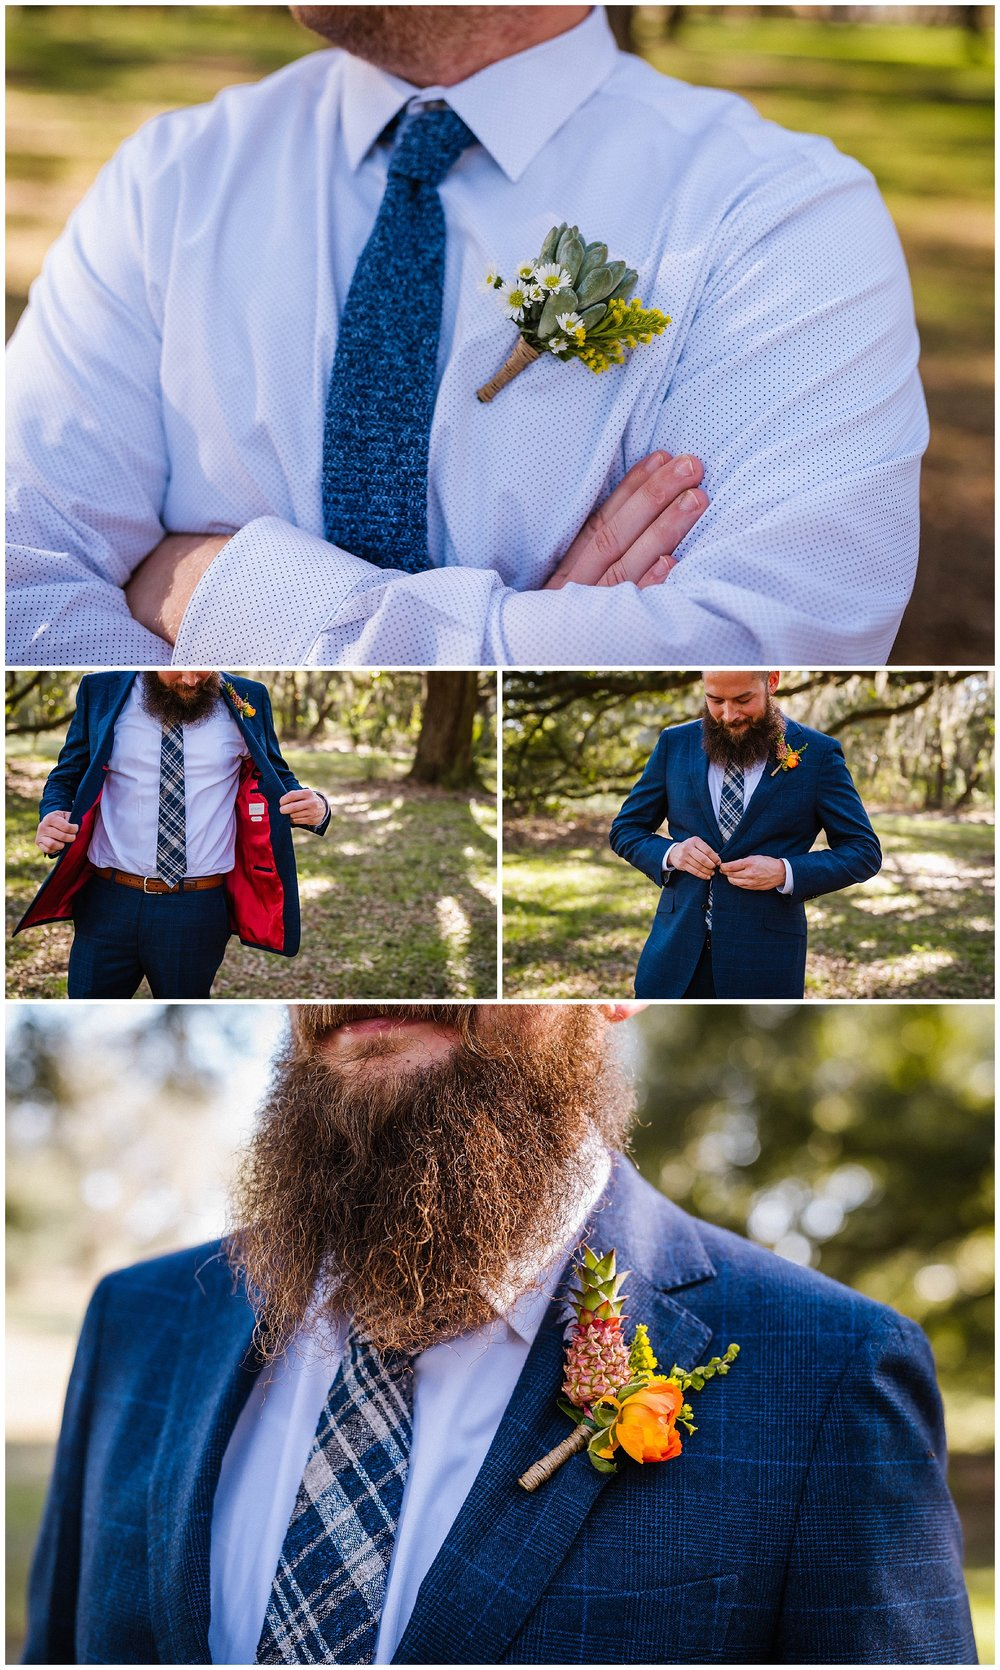 magical-outdoor-florida-wedding-smoke-bombs-flowers-crown-beard_0005.jpg